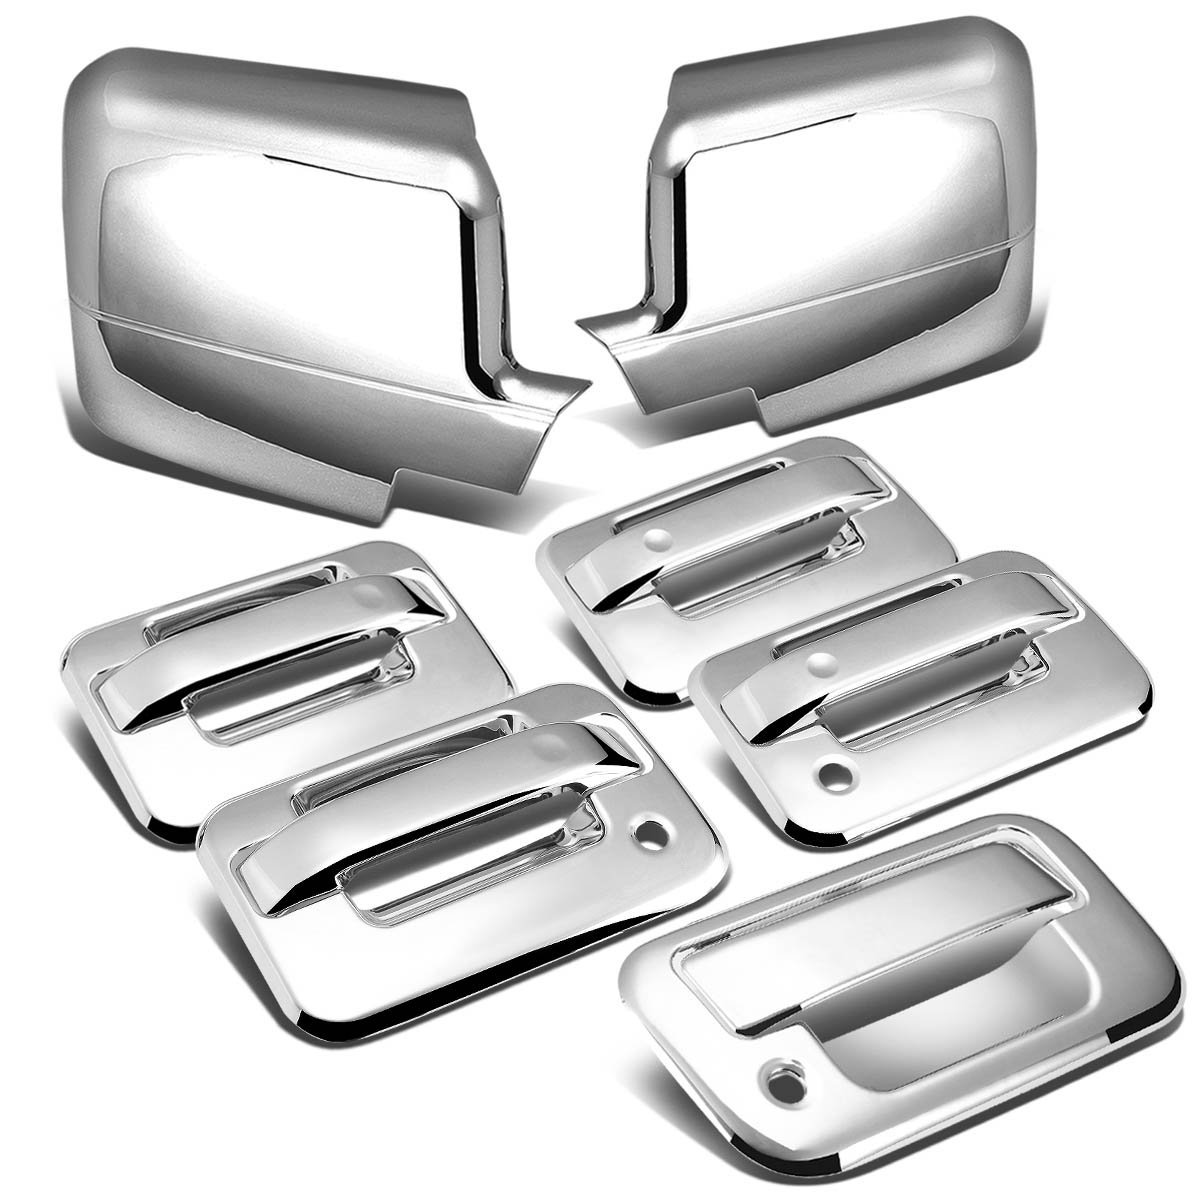 04-08 Ford F-150 11th Gen 4DR Tailgate+Door Handle w/Passenger Keyhole+Mirror Cover (Chrome)  sc 1 st  ProTuningLab.com & 04-08 Ford F-150 11th Gen 4DR Tailgate+Door Handle w/Passenger ...